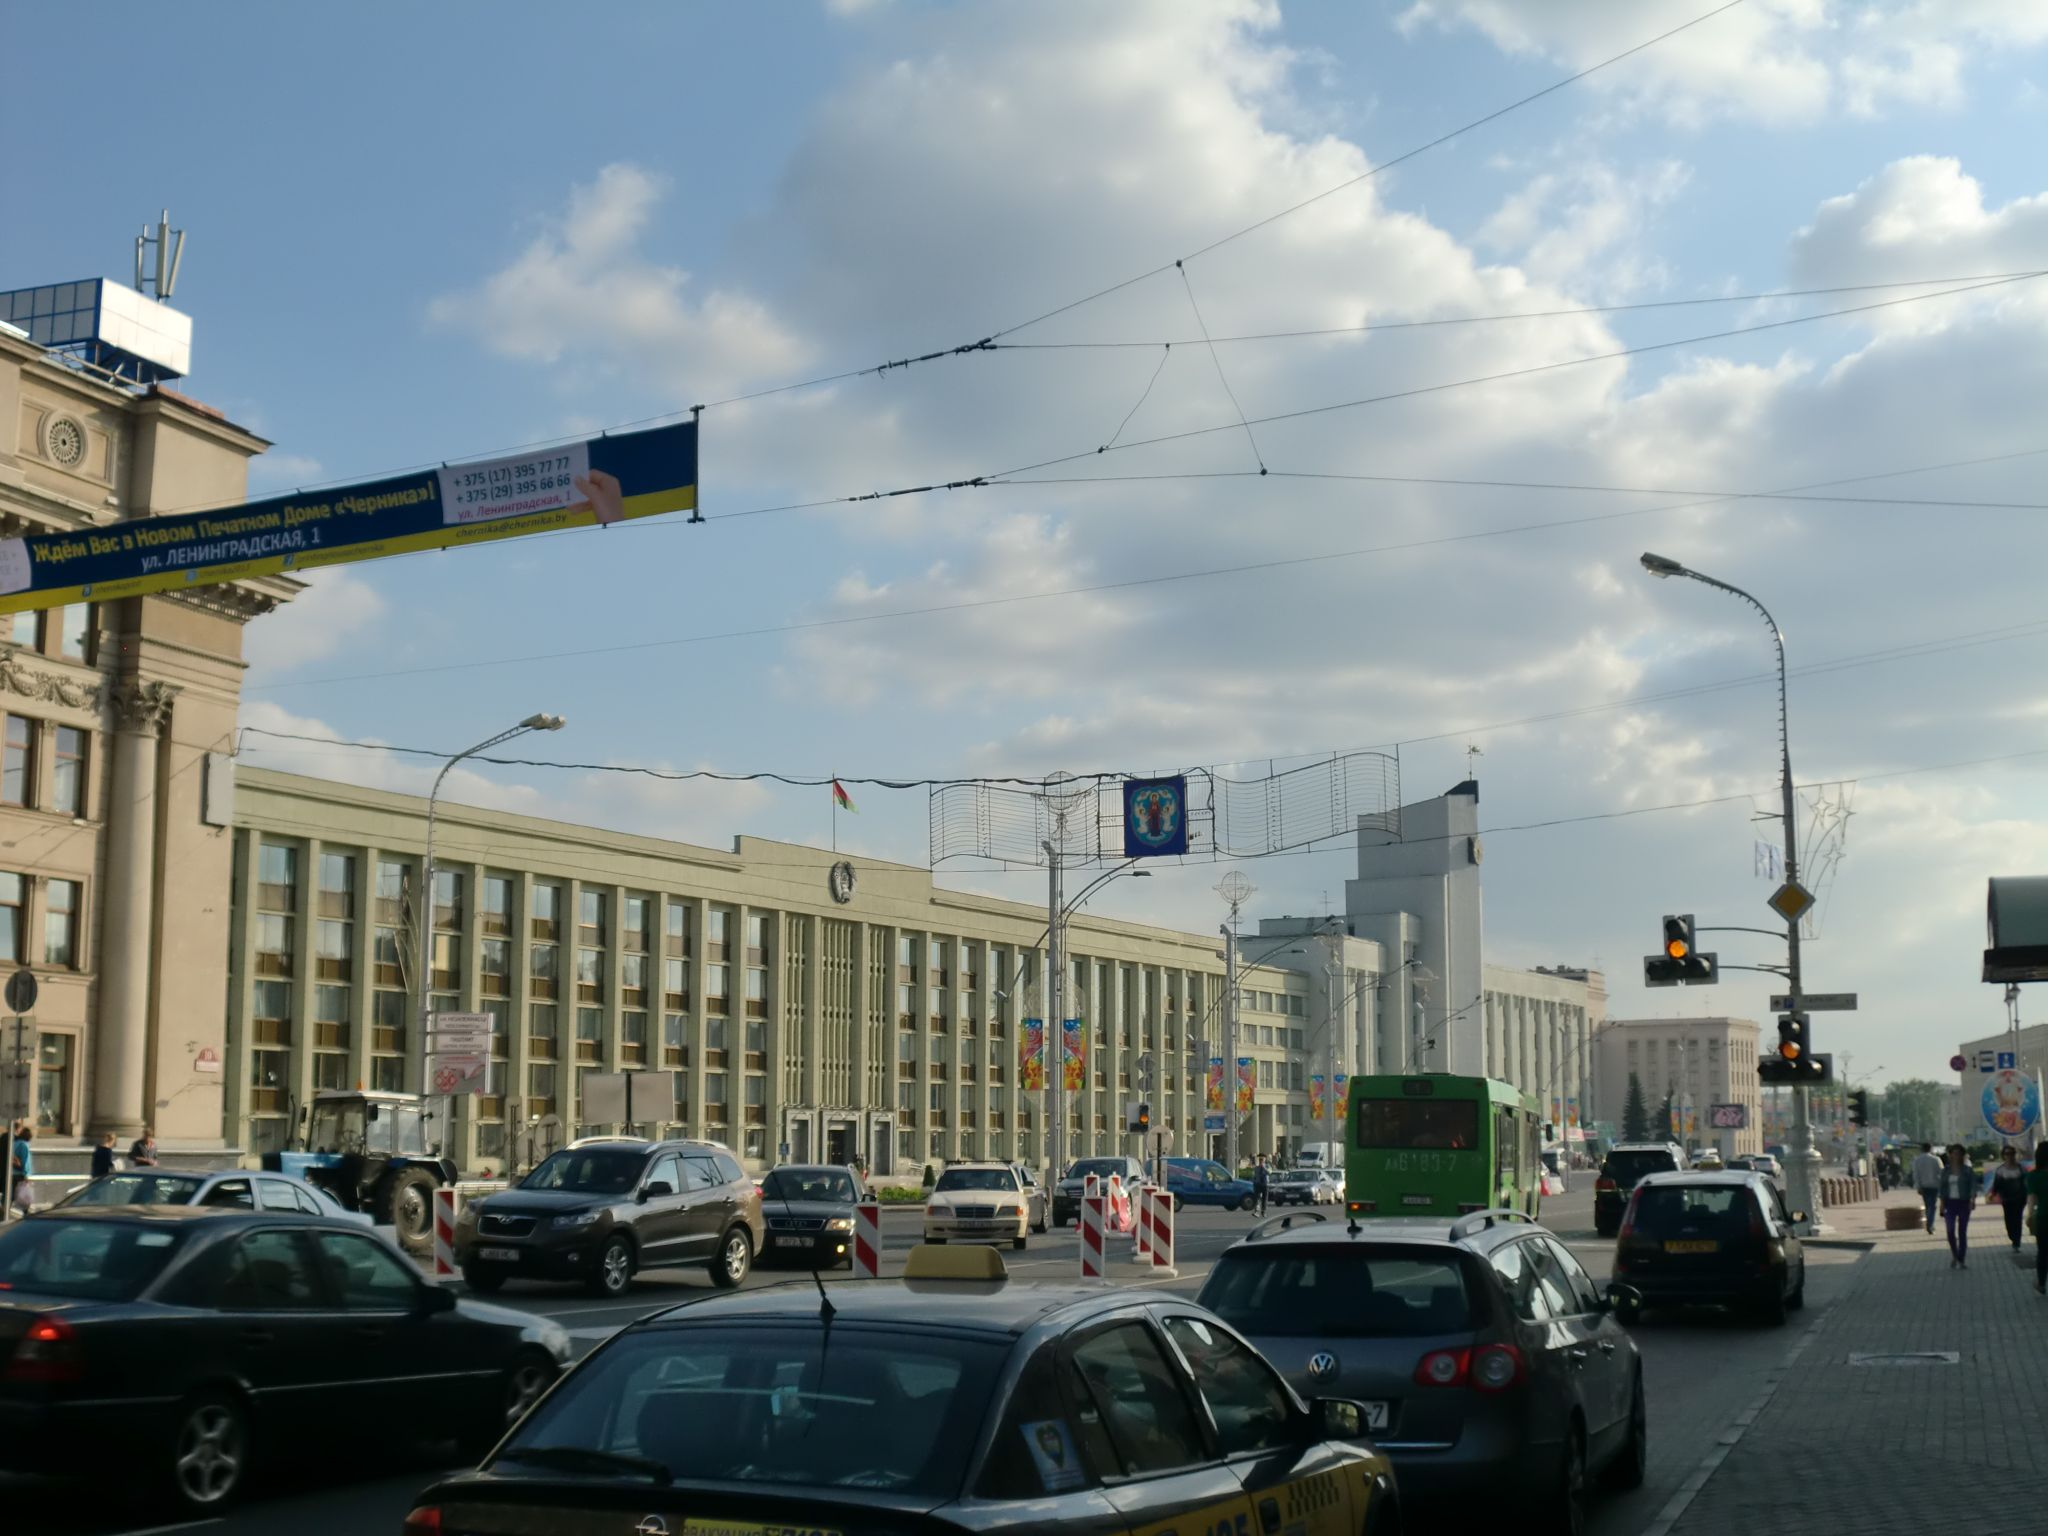 Minsk city 28 - Minsk, 1 amazing city you have to see